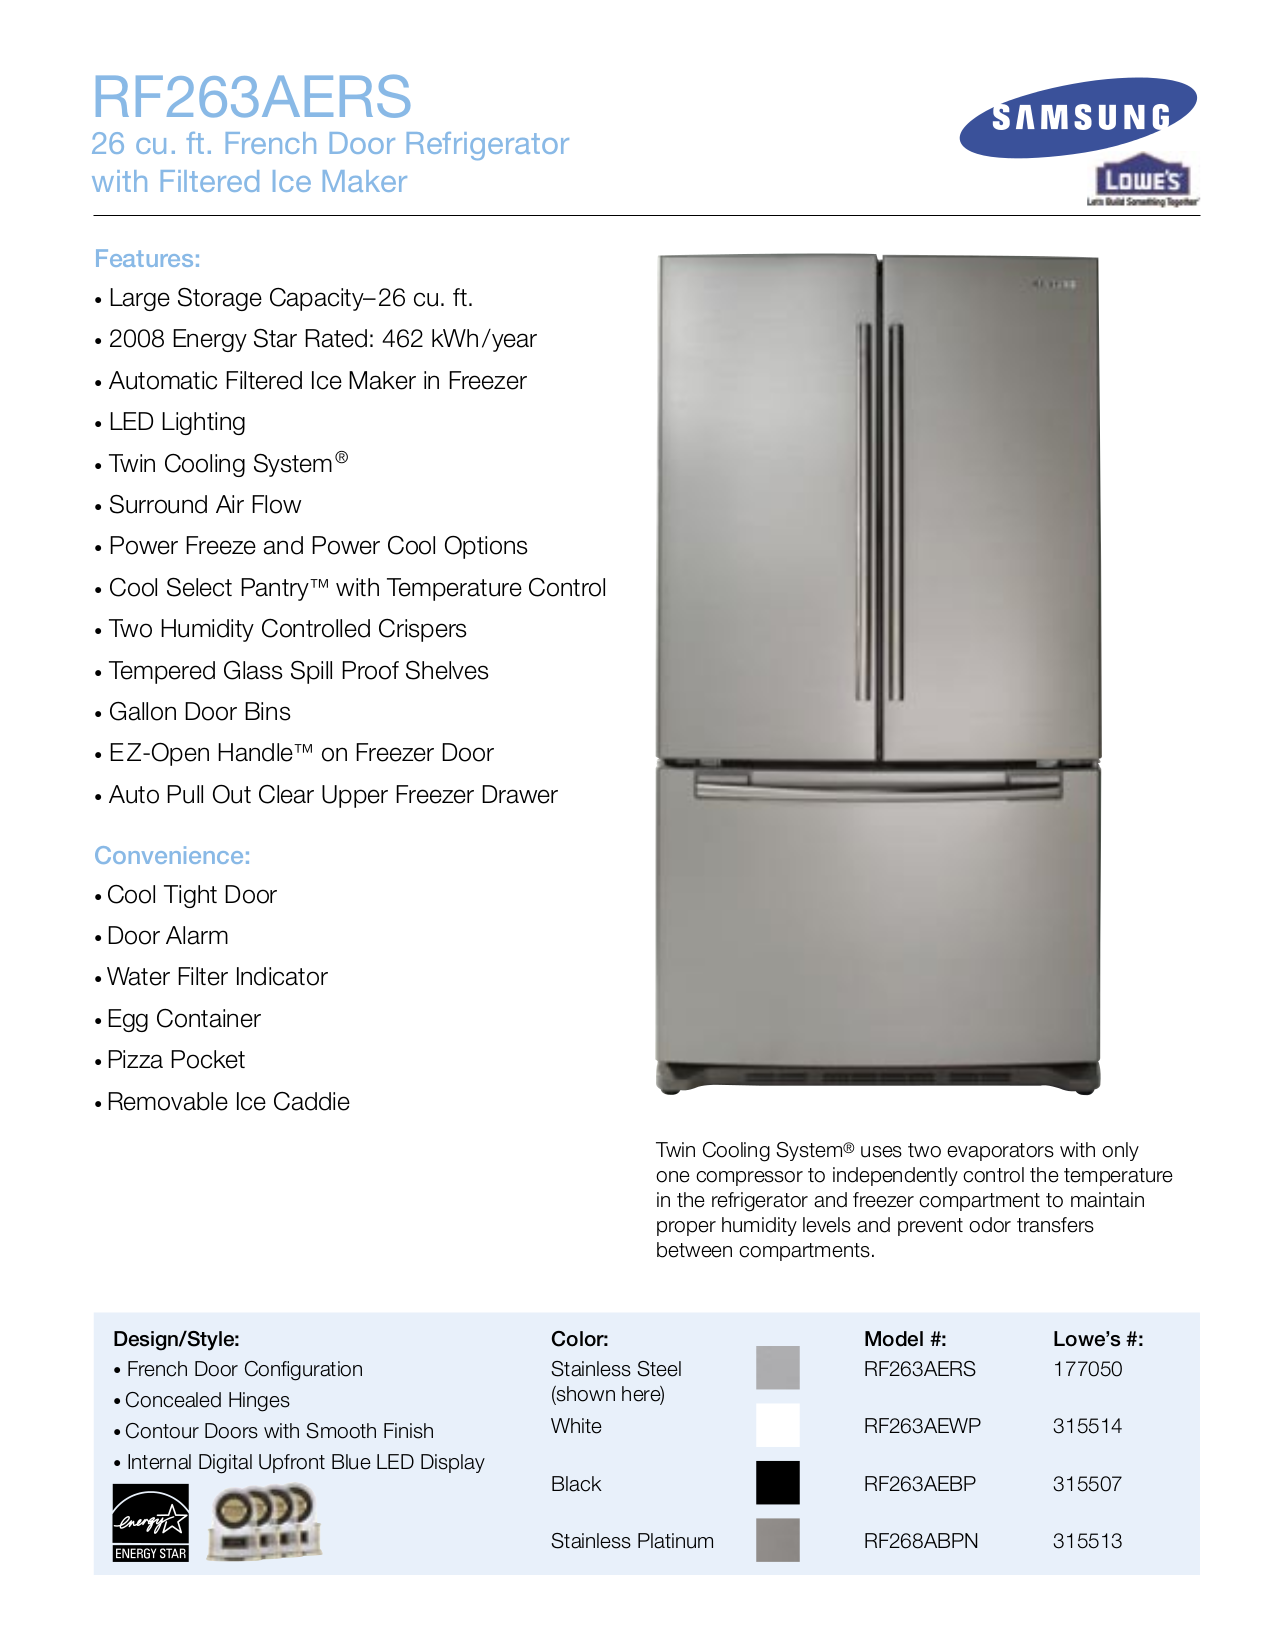 pdf for Samsung Refrigerator RF268ABPN manual